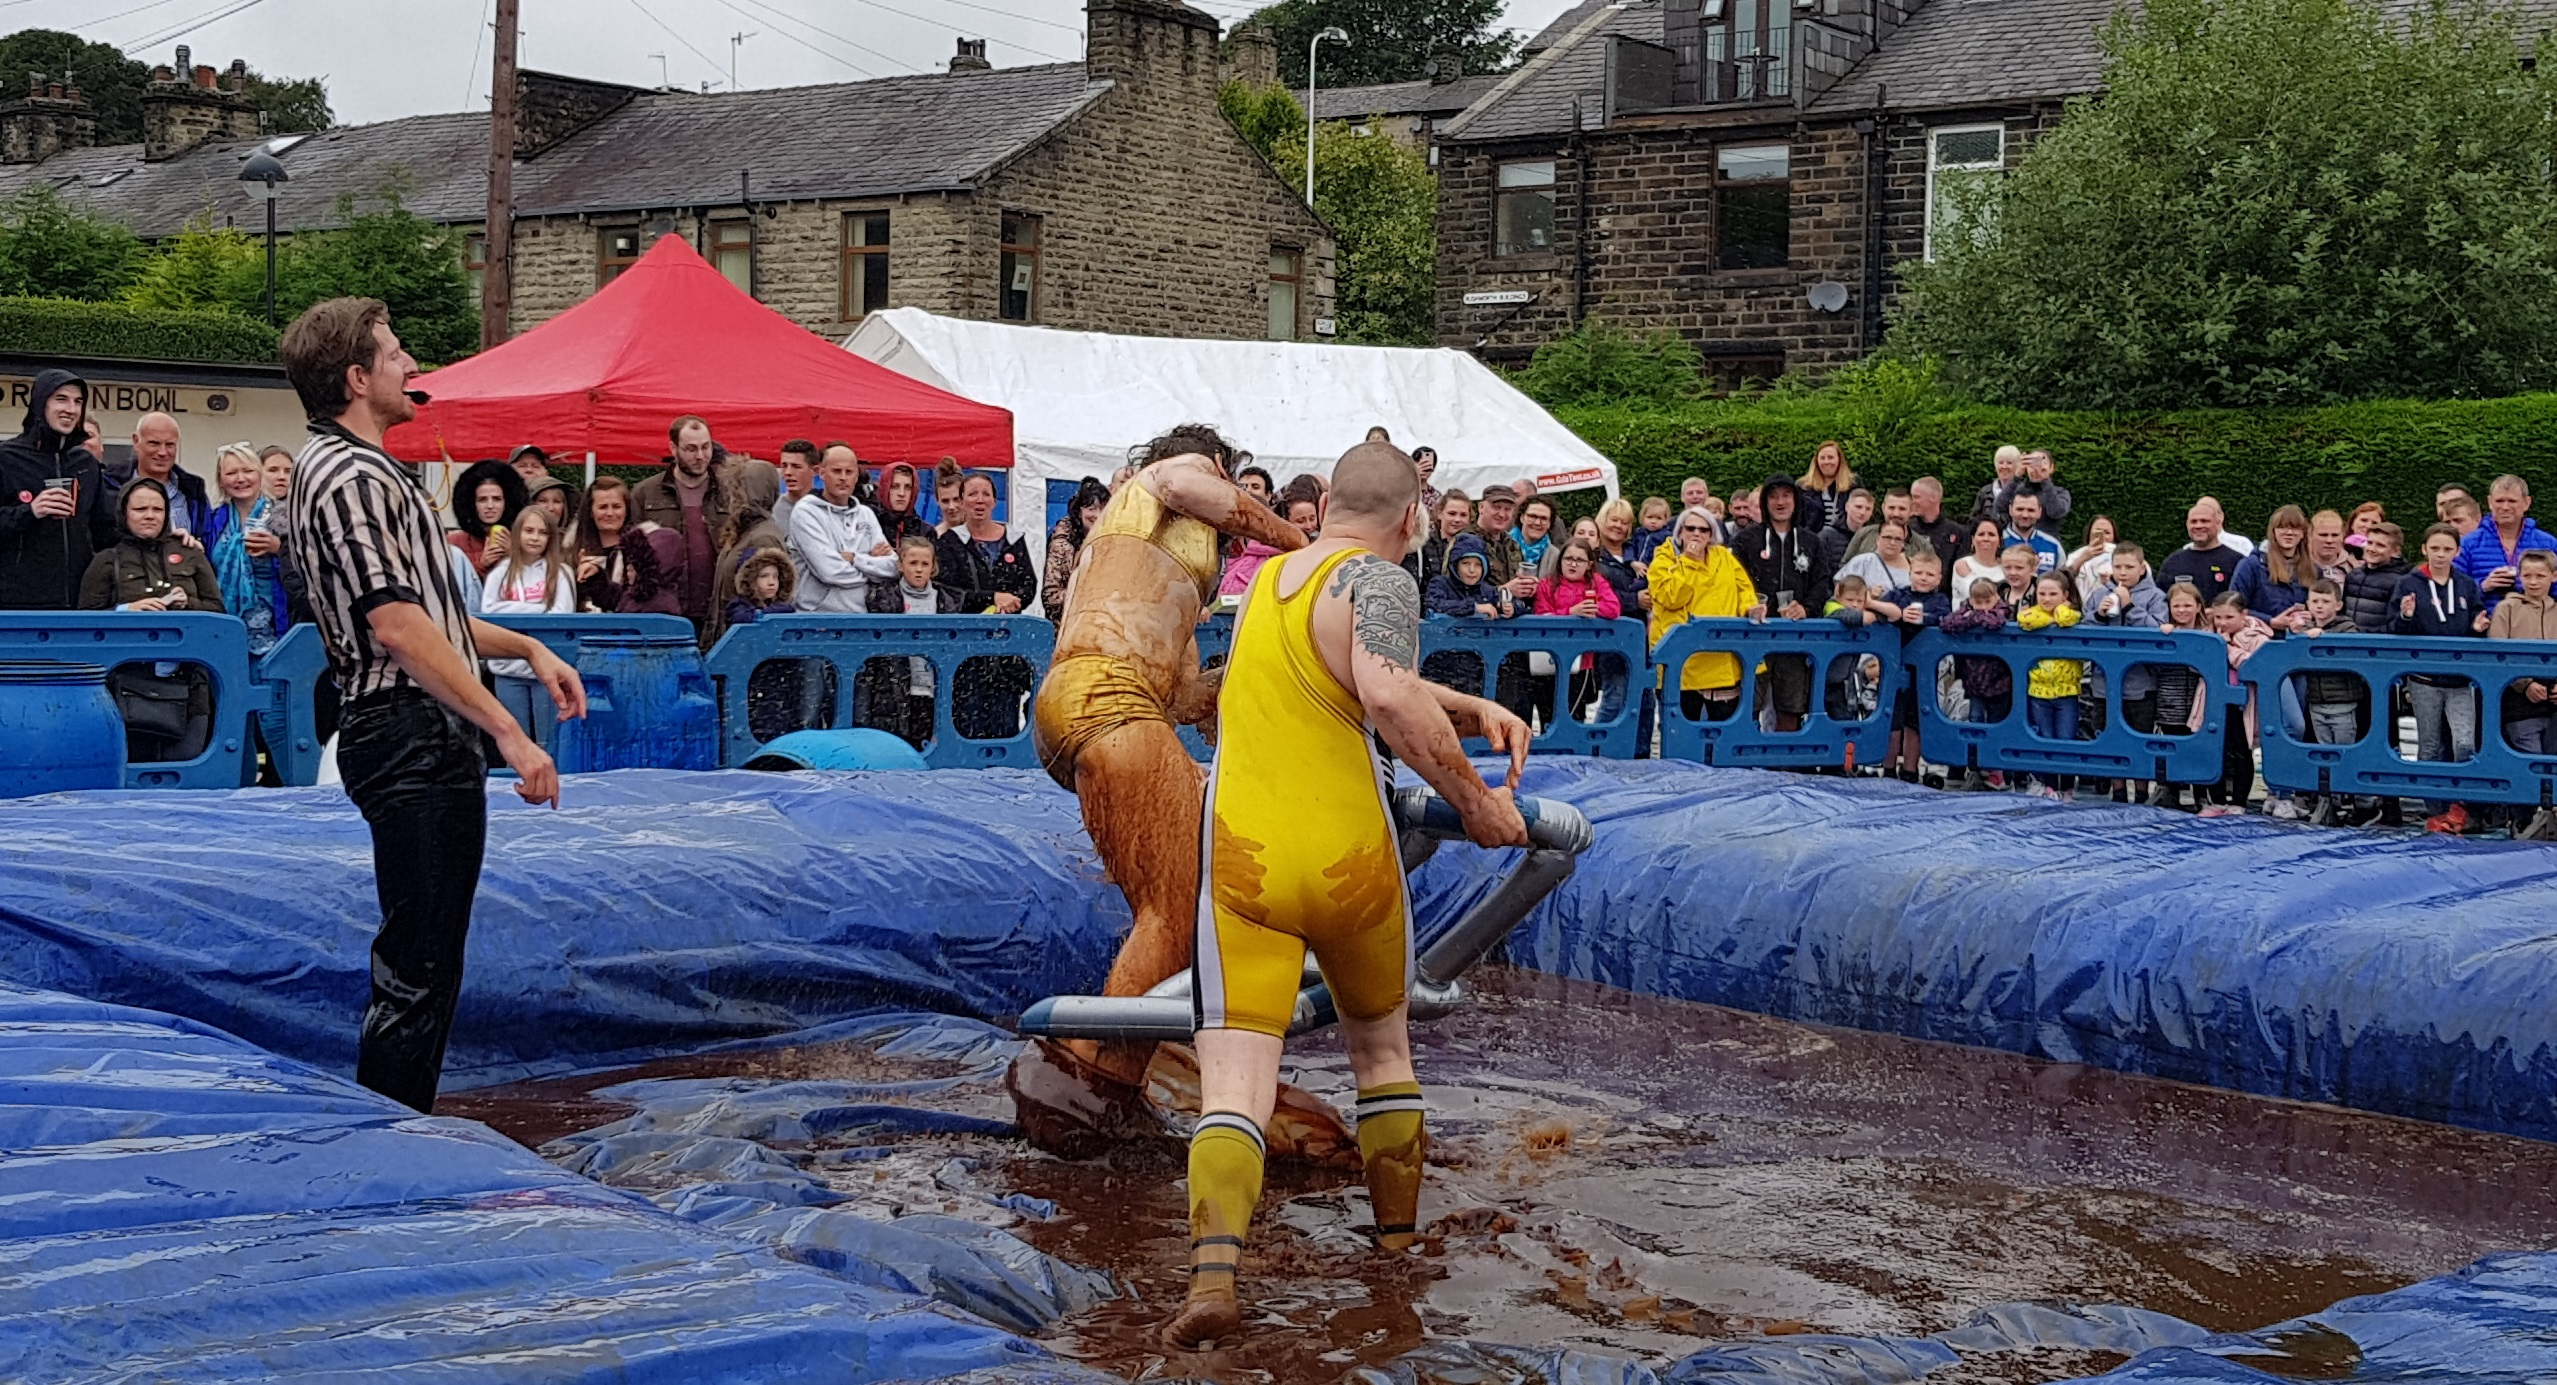 Gravy Wrestling 2018 - Golden Balls and the Bisto Beast